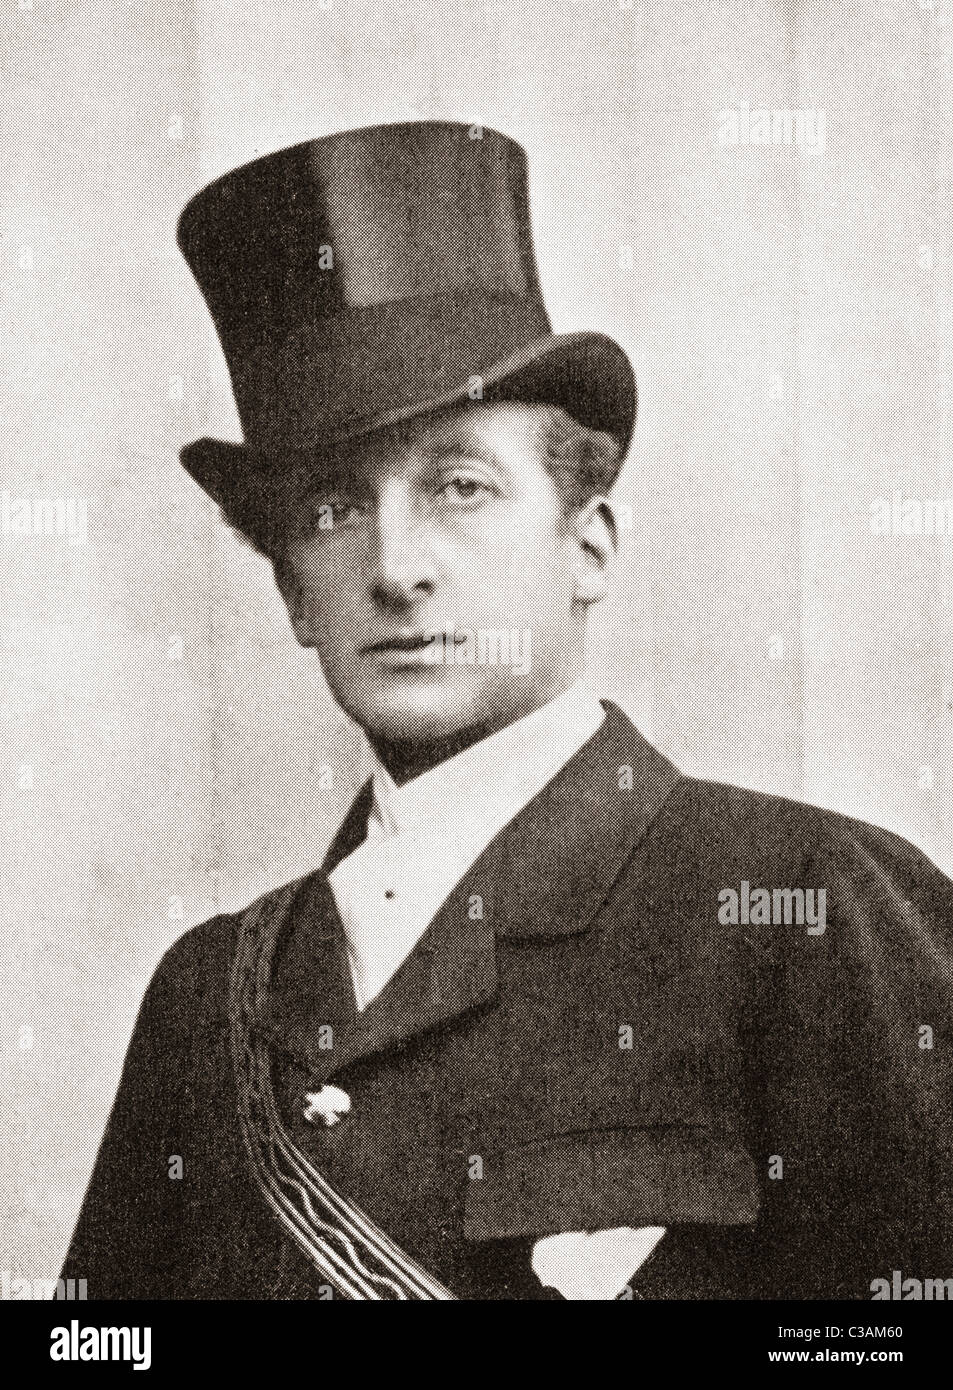 Thomas Lister, 4th Baron Ribblesdale, 1854 – 1925. British Liberal politician. - Stock Image